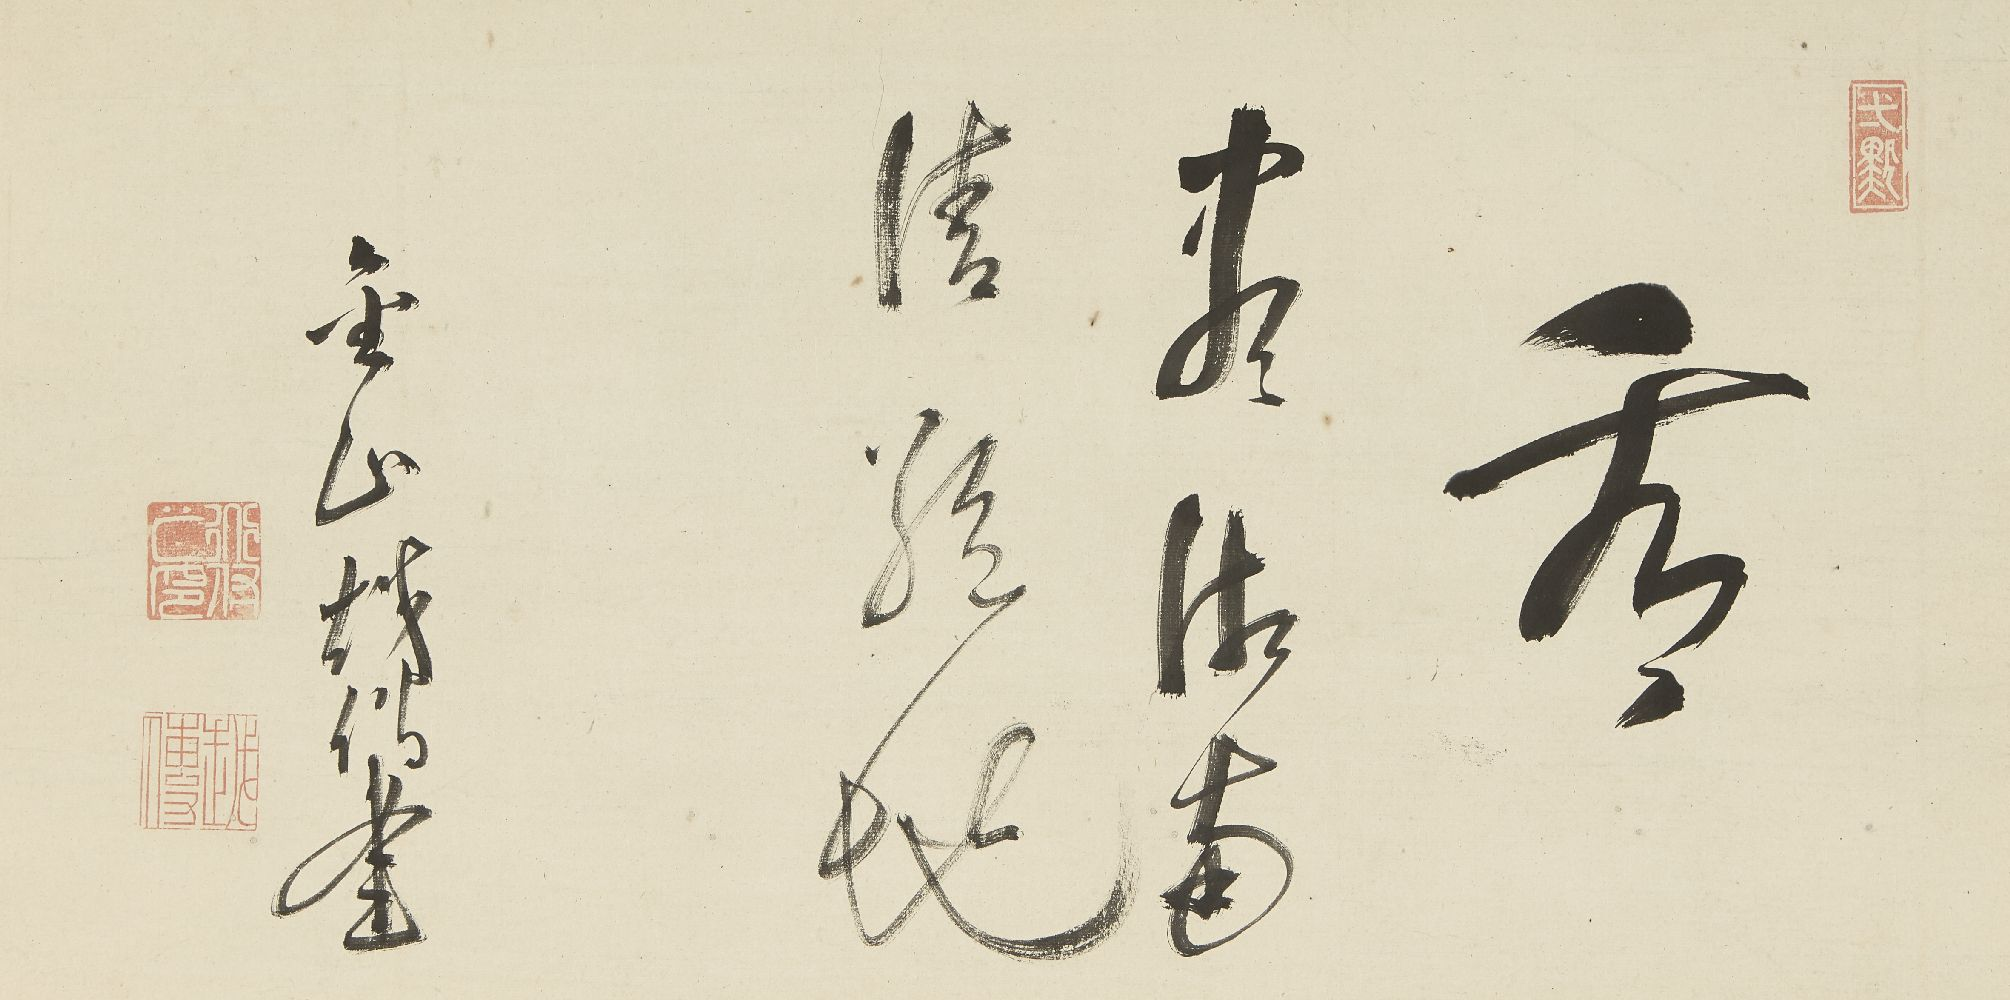 20th Century Japanese School, calligraphy ink on paper, kakemono-e image 27 x 54cm Please refer to